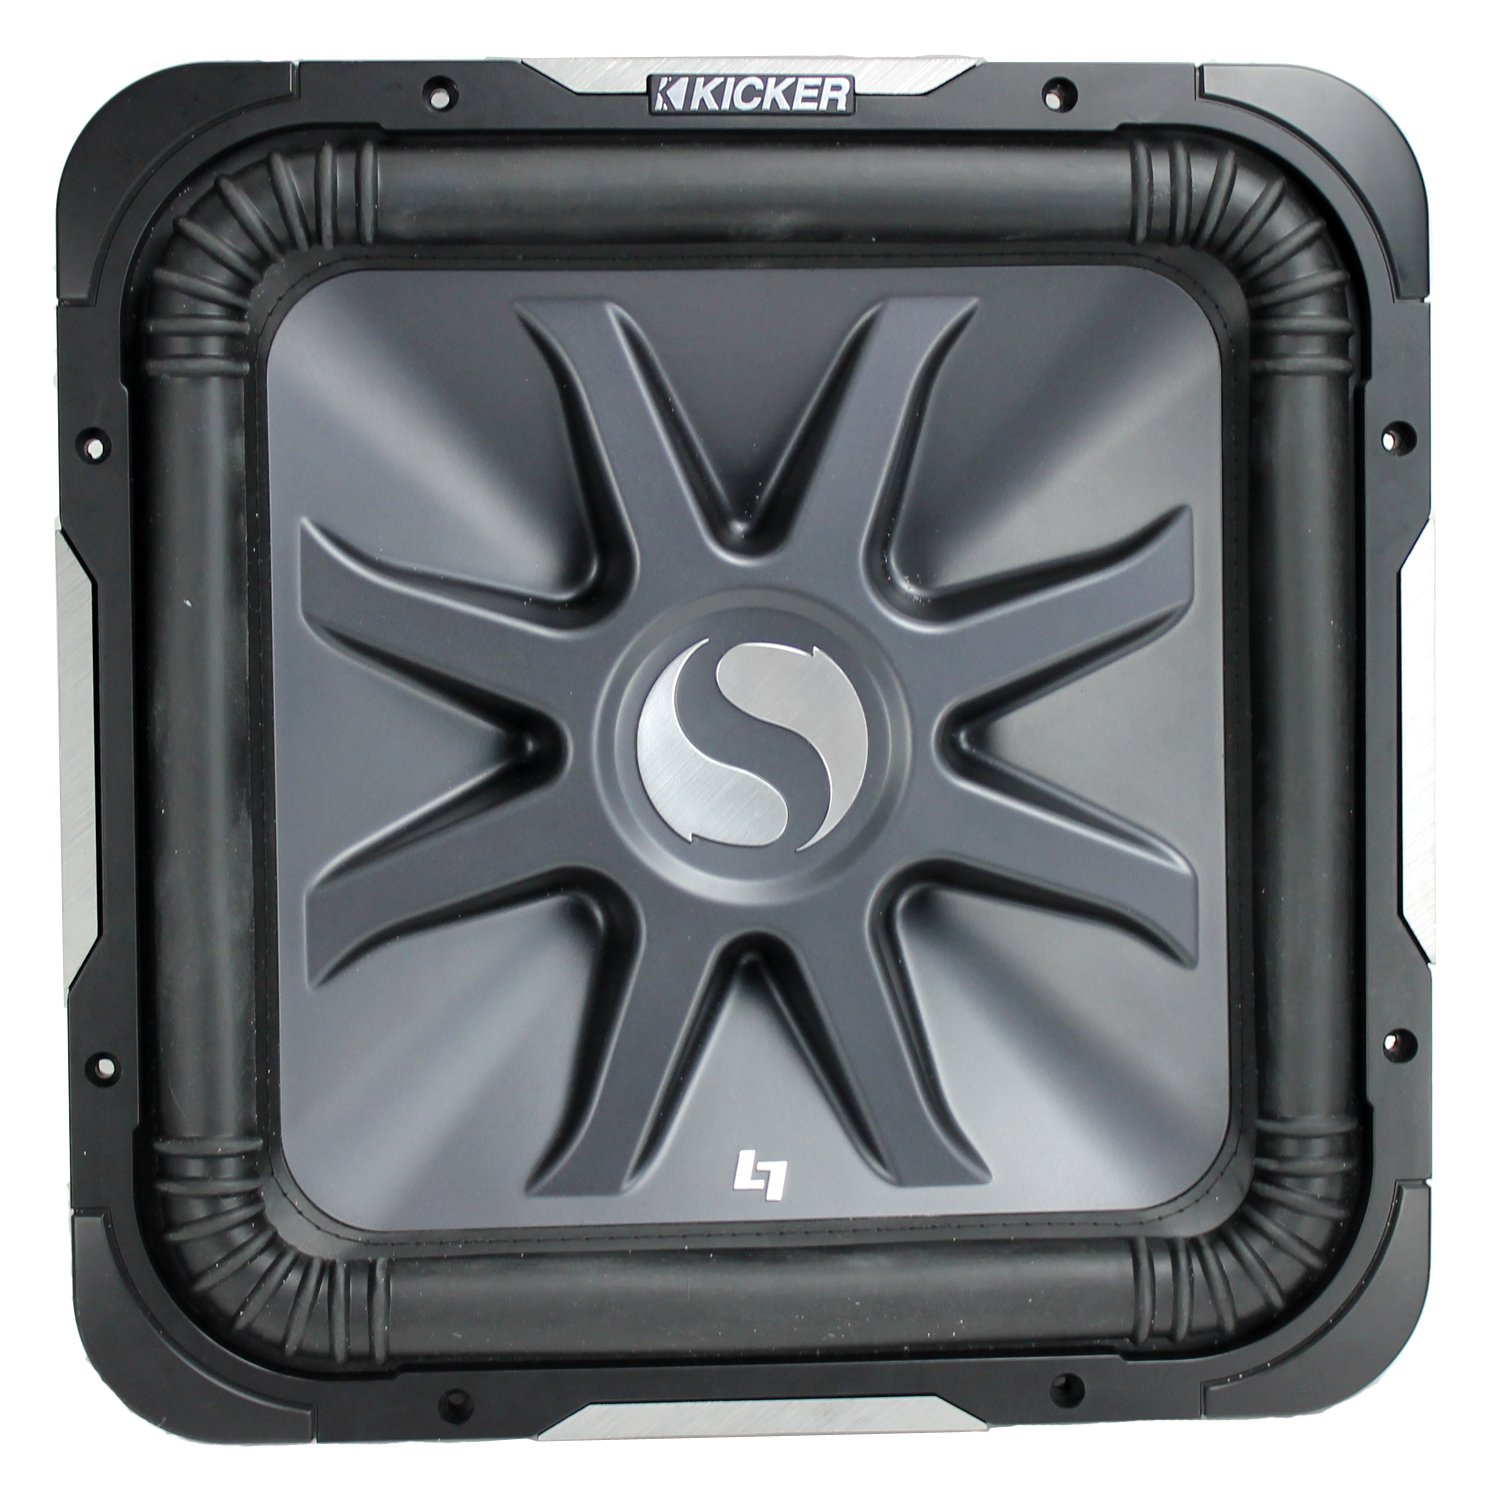 New Kicker S15l7 15 2000w 2 Ohm Car Audio Subwoofer Sub Woofer L7 12 Wiring Diagram Solo Baric